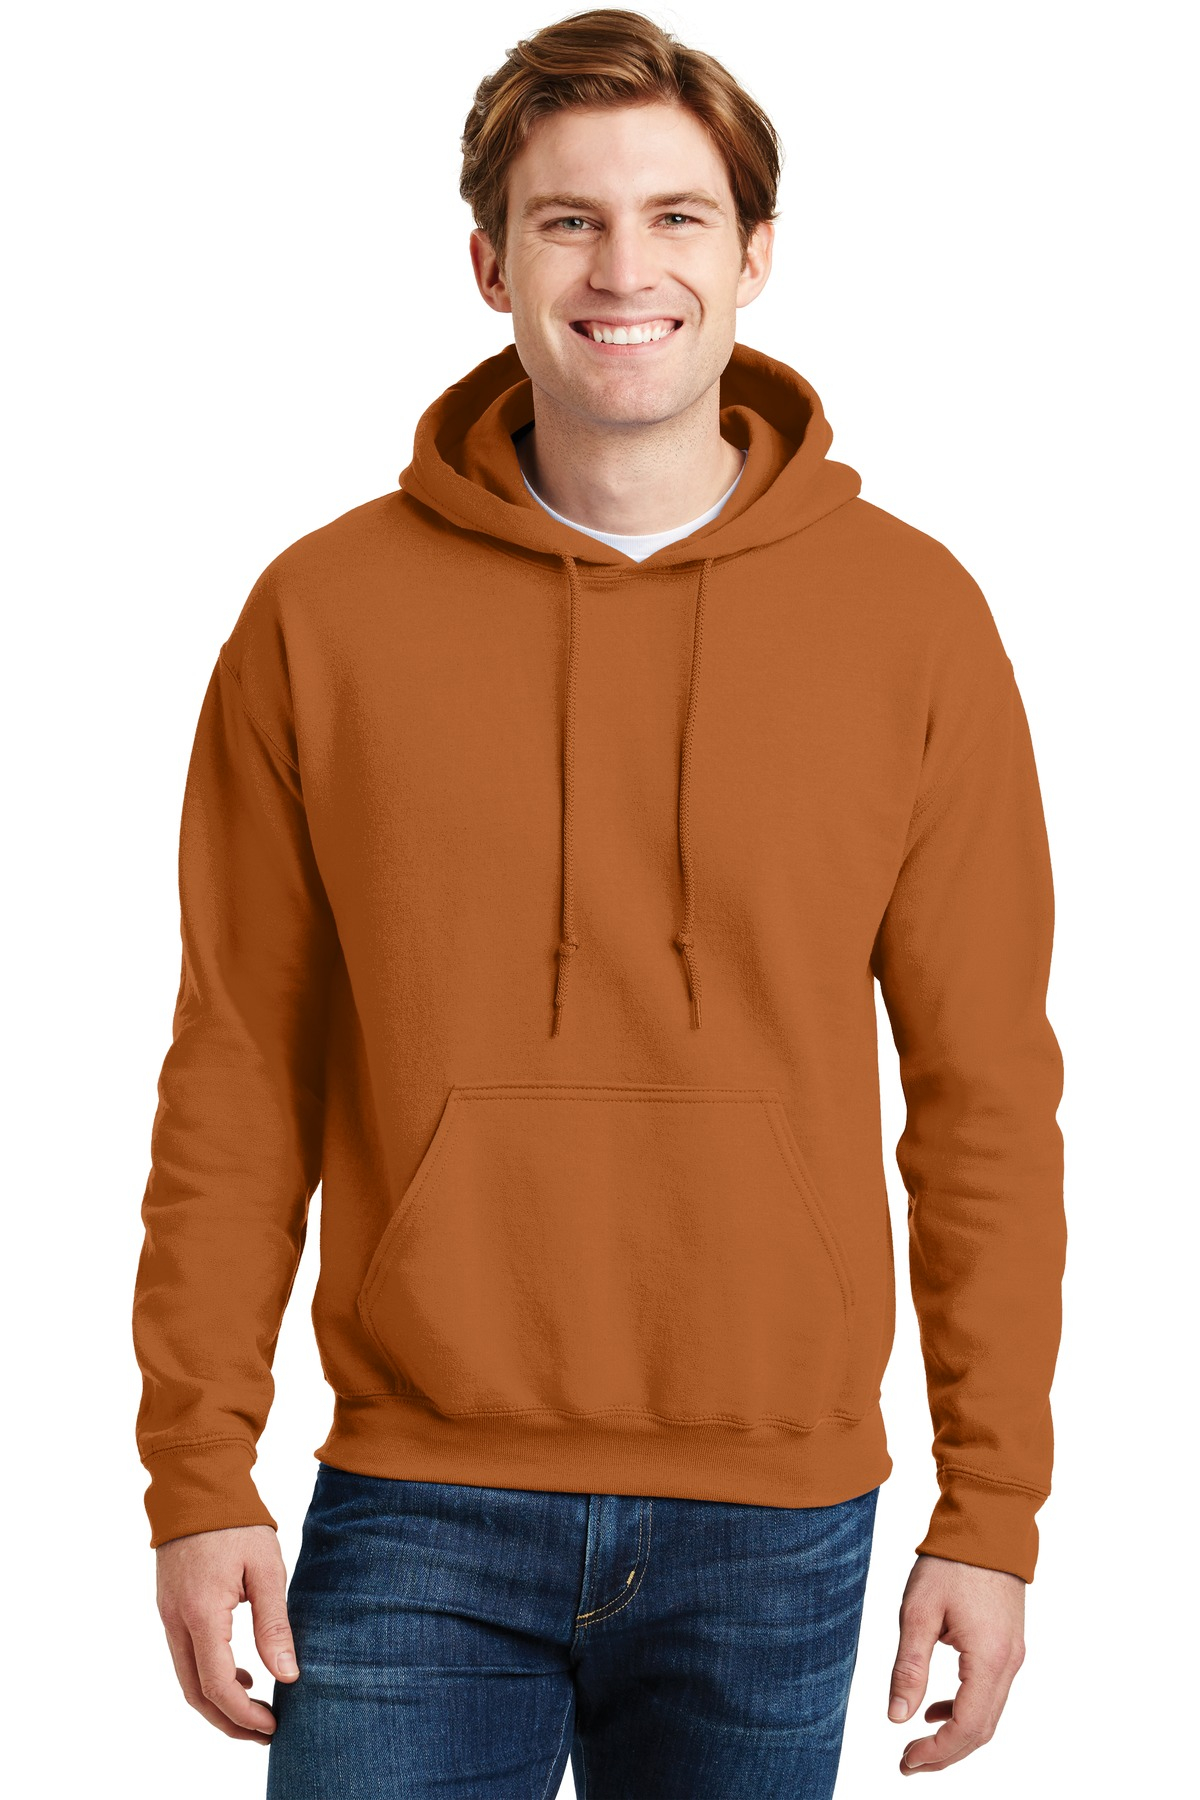 Gildan ®  - DryBlend ®  Pullover Hooded Sweatshirt.  12500 - Texas Orange